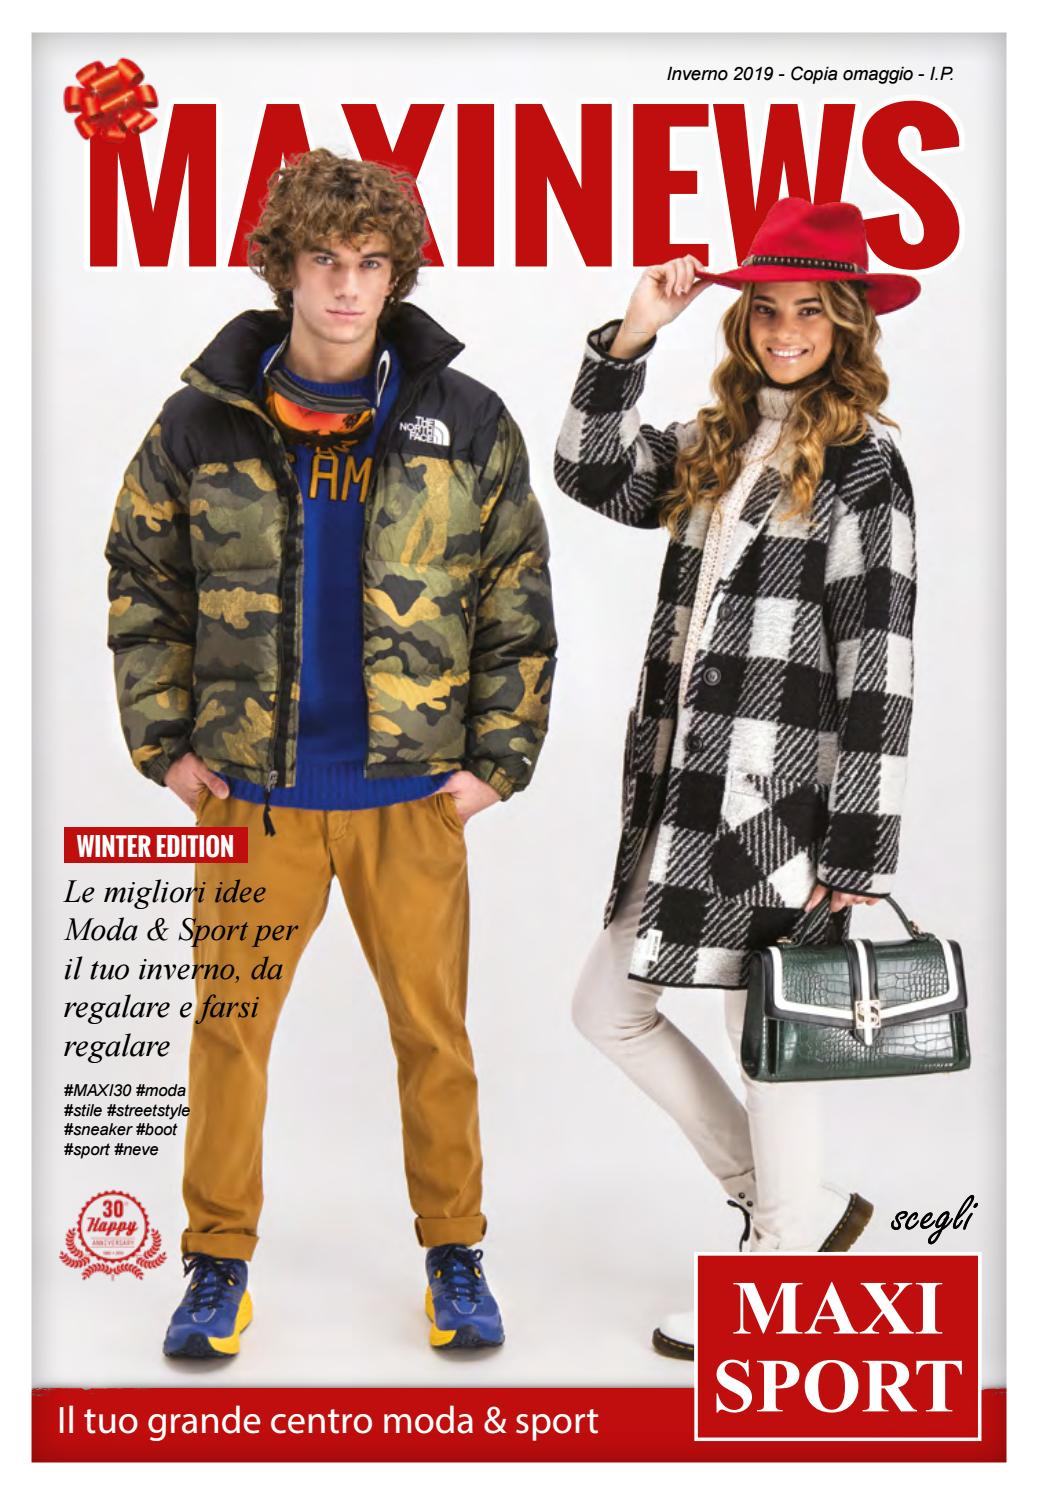 Maxinews Winter Edition 2019 by Maxi Sport issuu